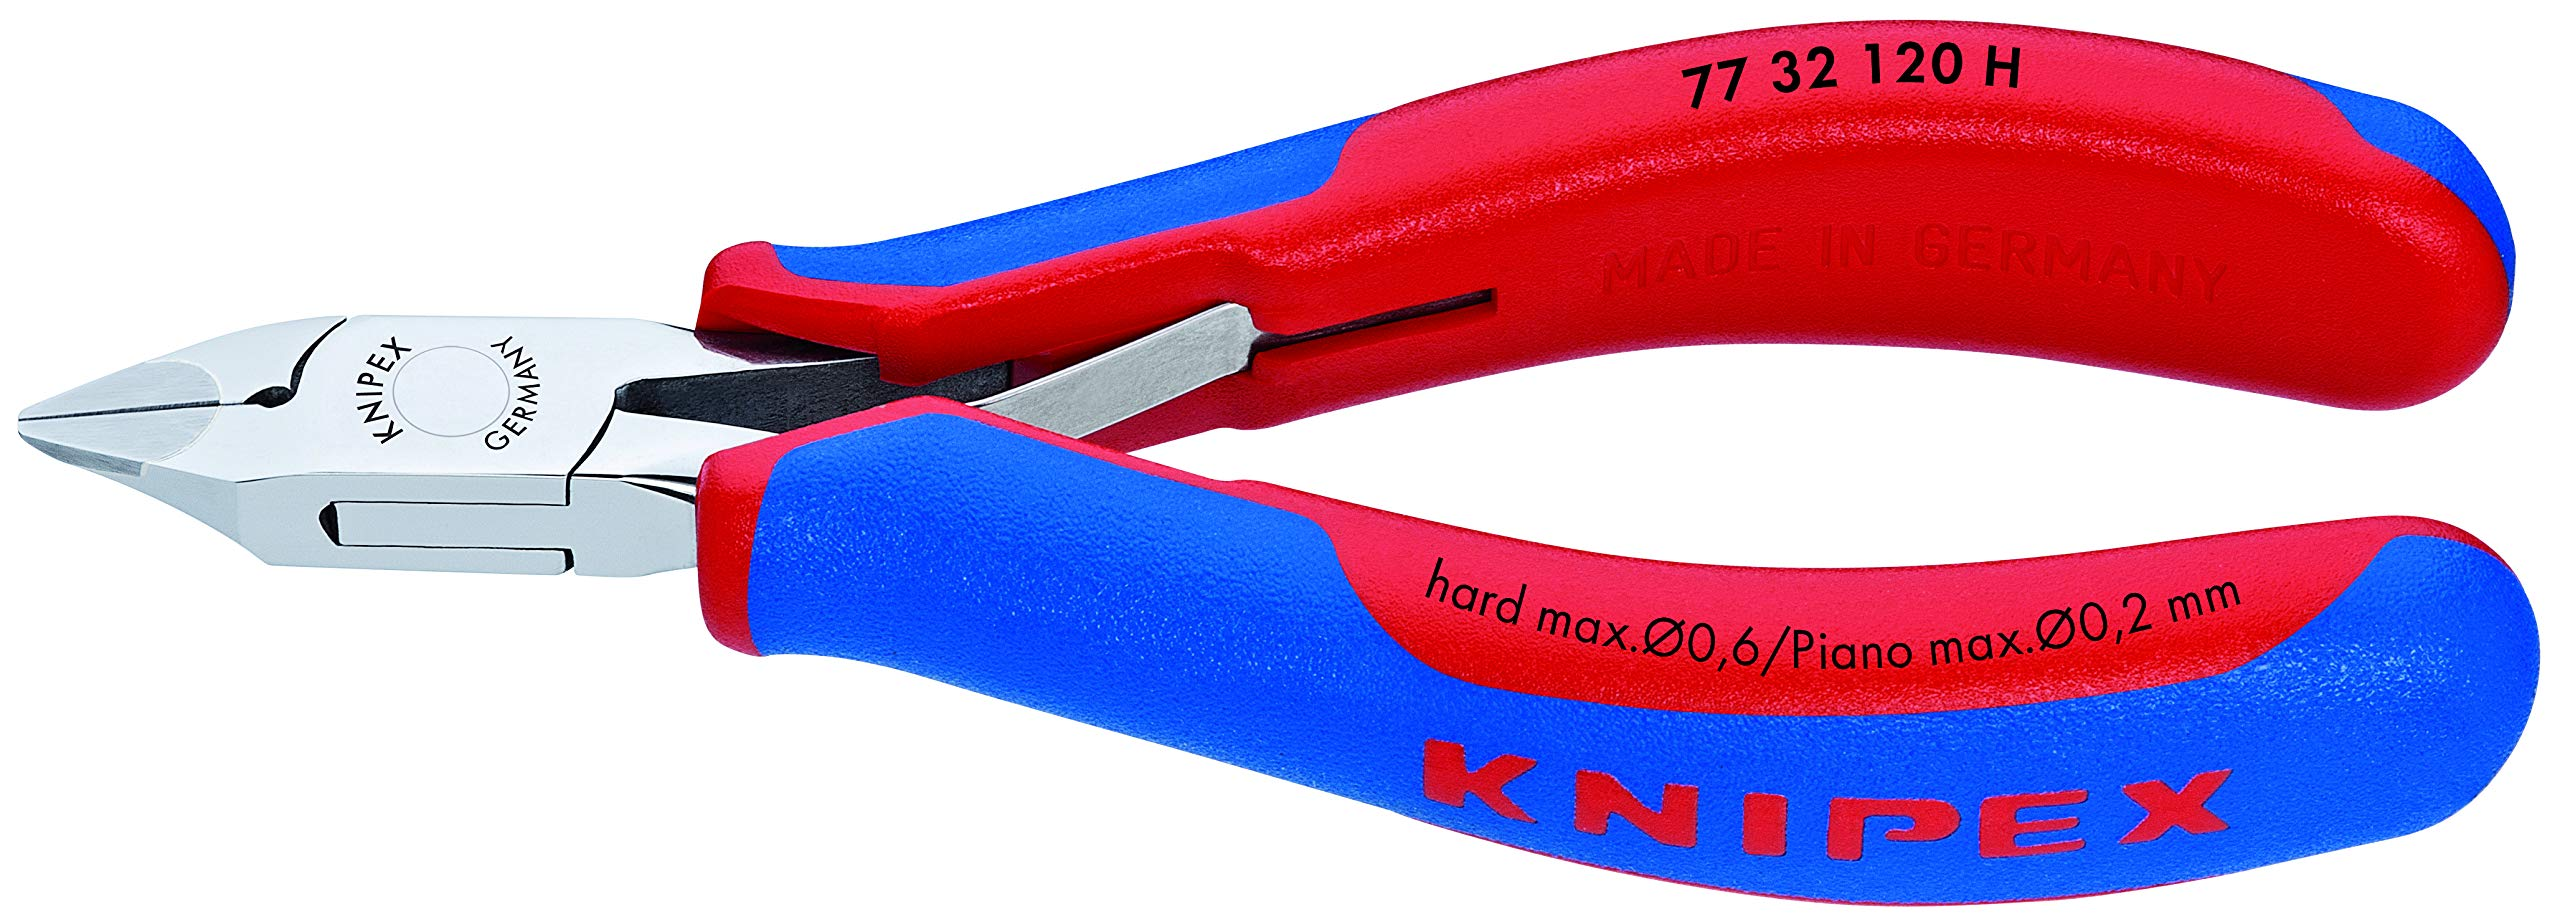 KNIPEX Tools 77 32 120 H Electronics Diagonal Cutters, Carbide Cutting Edges, 4.75-Inch